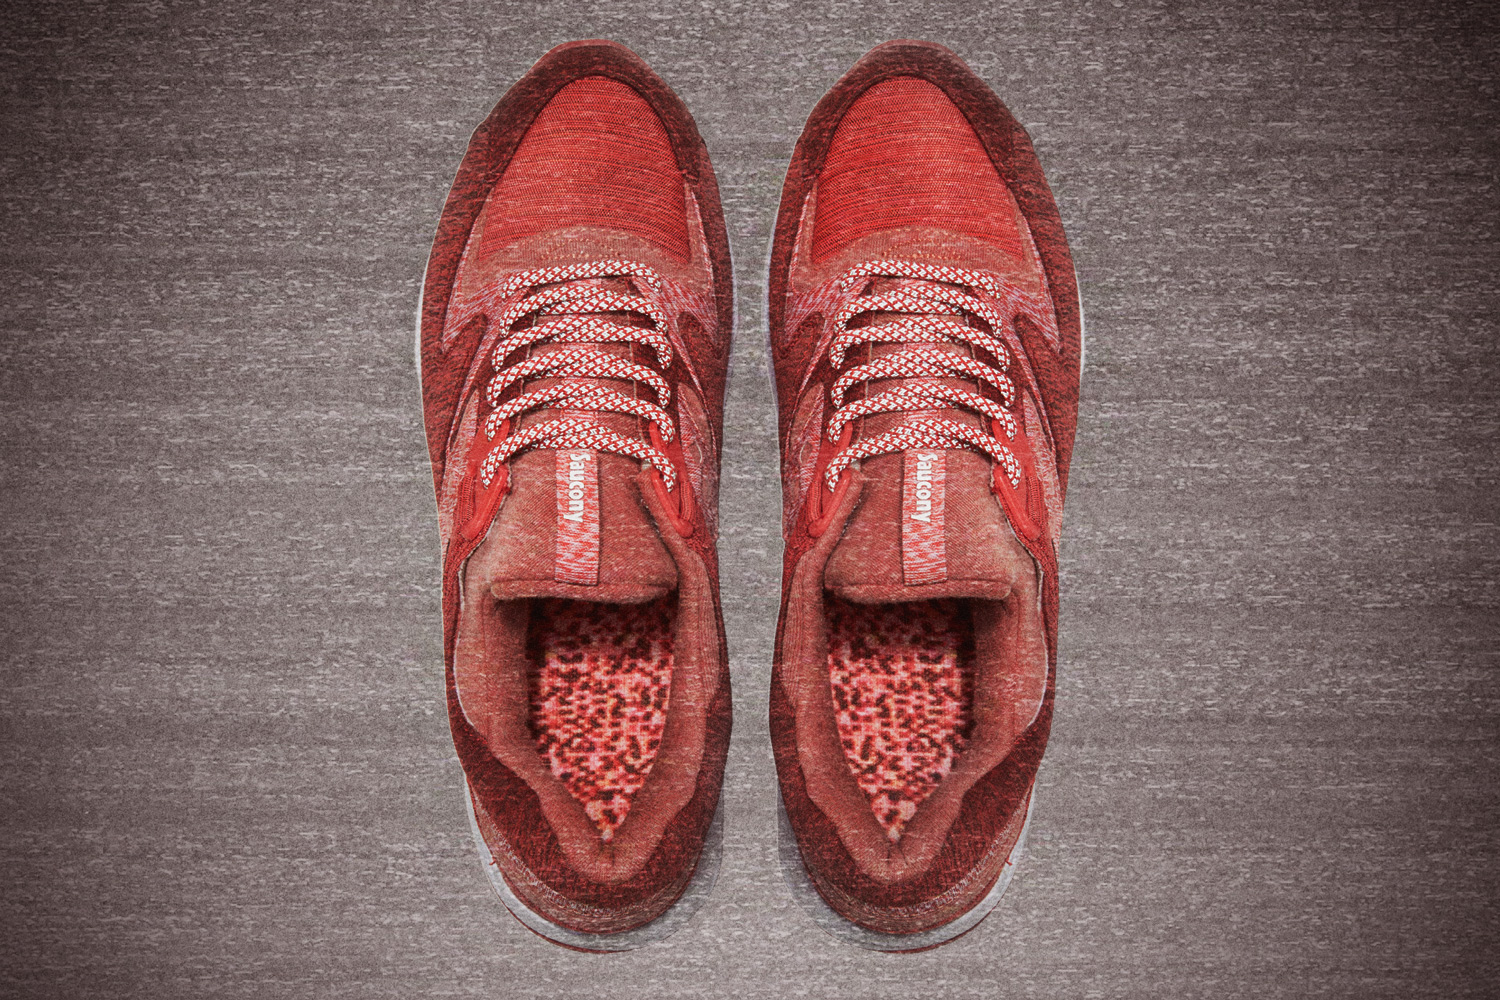 """Saucony x END. Grid 9000 """"Red Noise"""""""